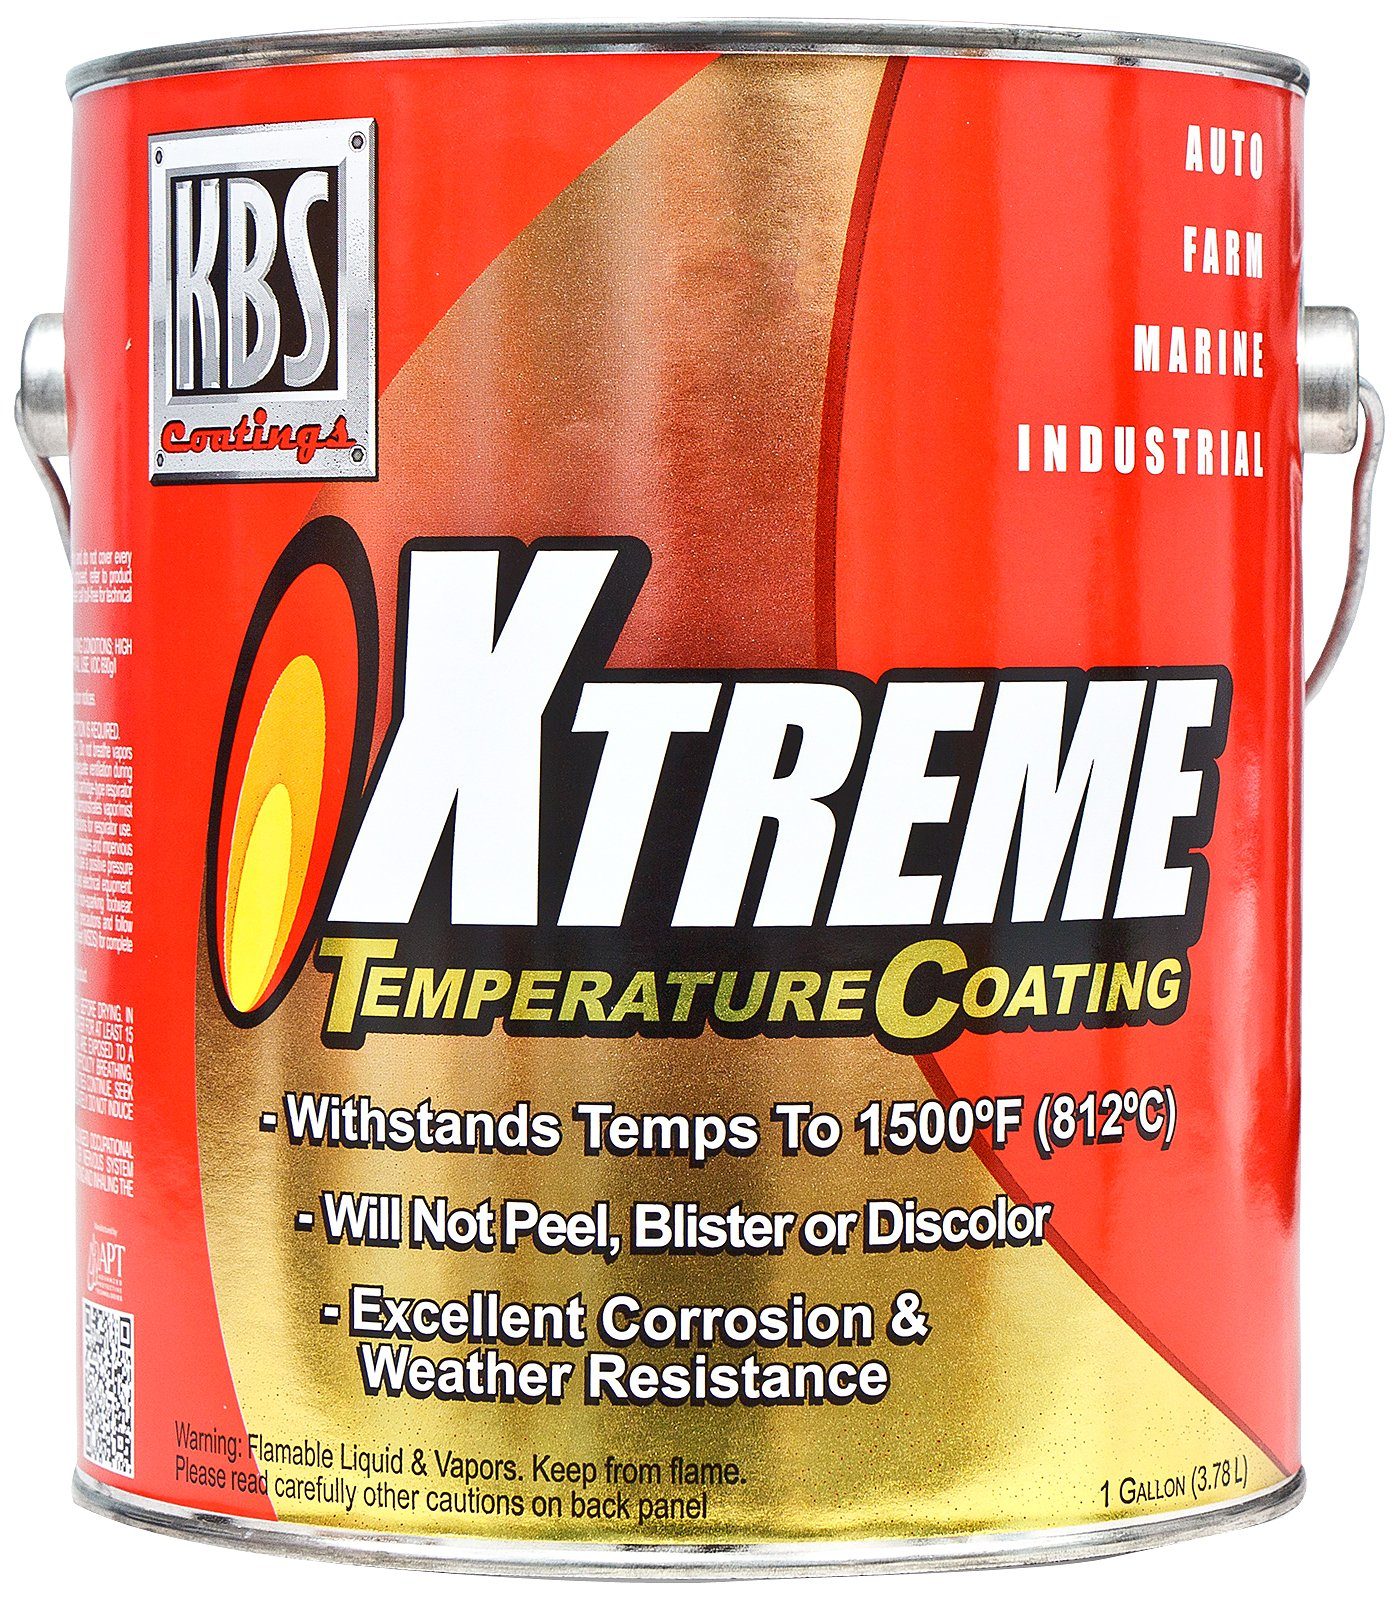 KBS Coatings 65503 Aluminum Xtreme Temperature Coating - 1 Gallon by KBS Coatings